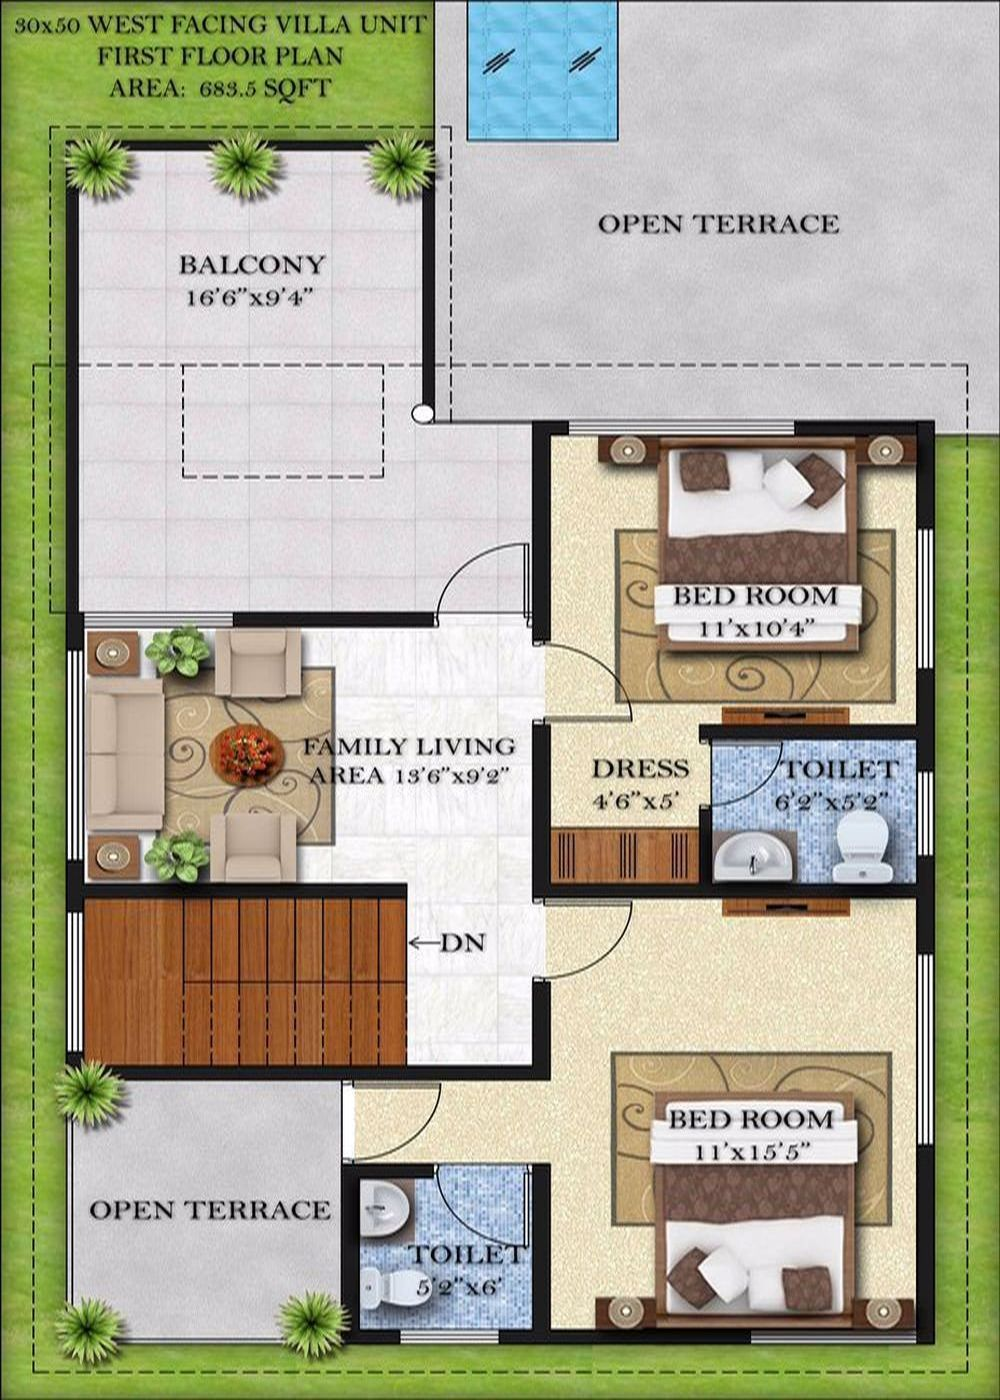 30 x 60 house plans west facing